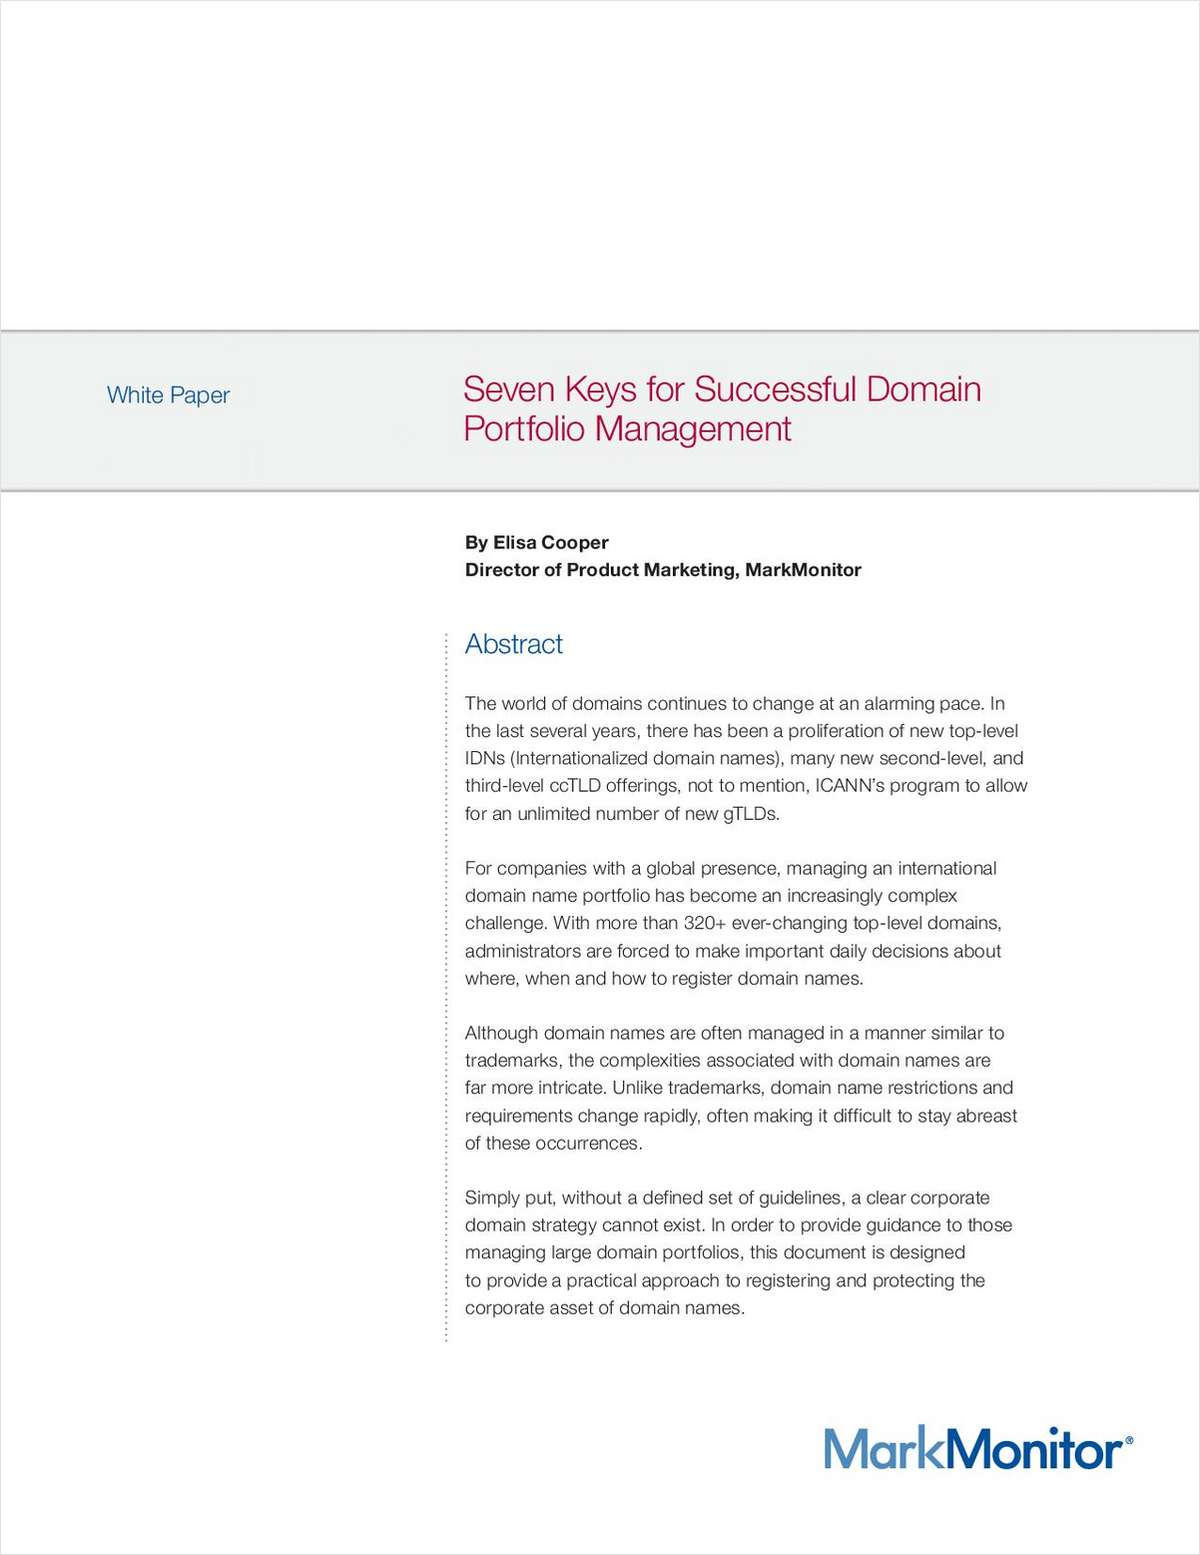 Seven Keys to Successful Domain Portfolio Management